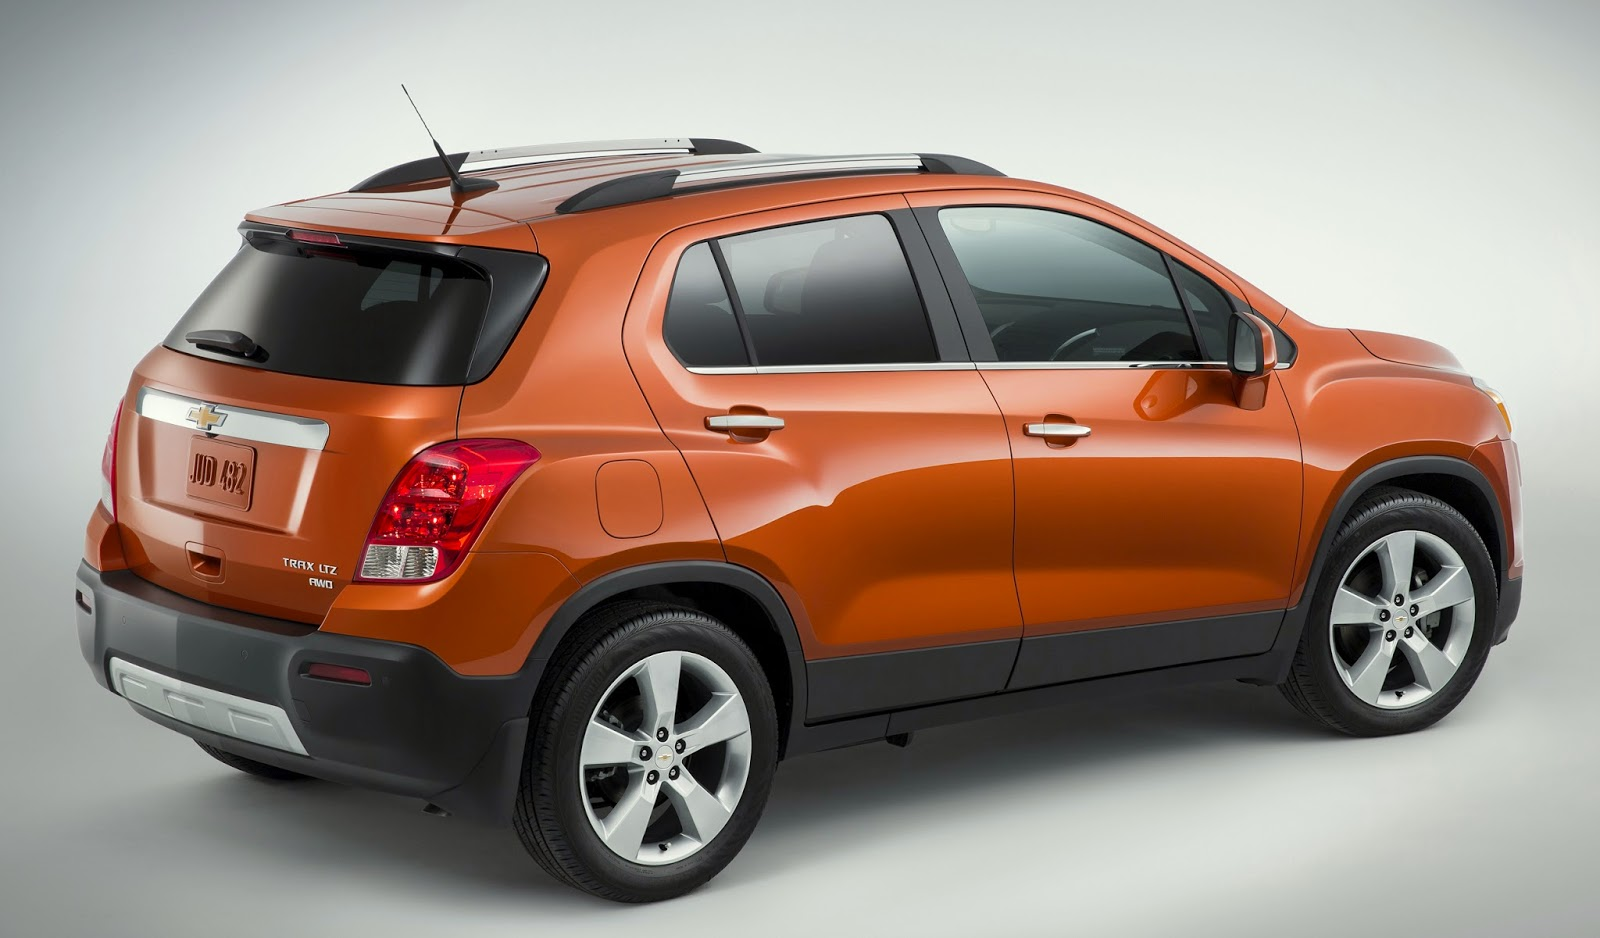 All Chevy big chevy suv uautoknow.net: Chevy bringing Trax small CUV to the US - w/video